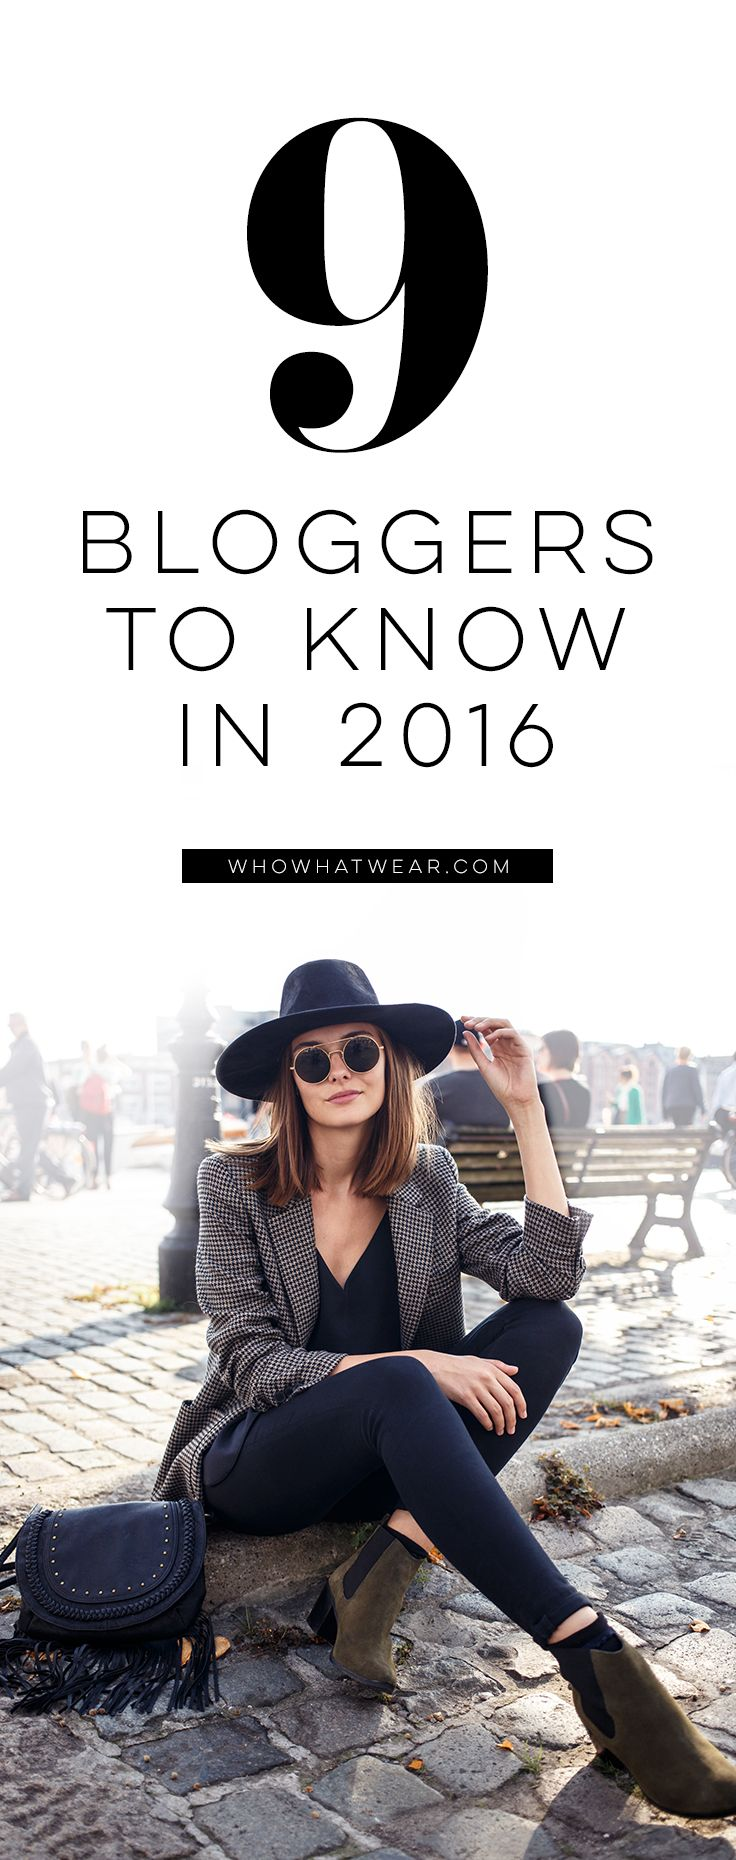 Have a fashionable 2016 by following these must-know bloggers